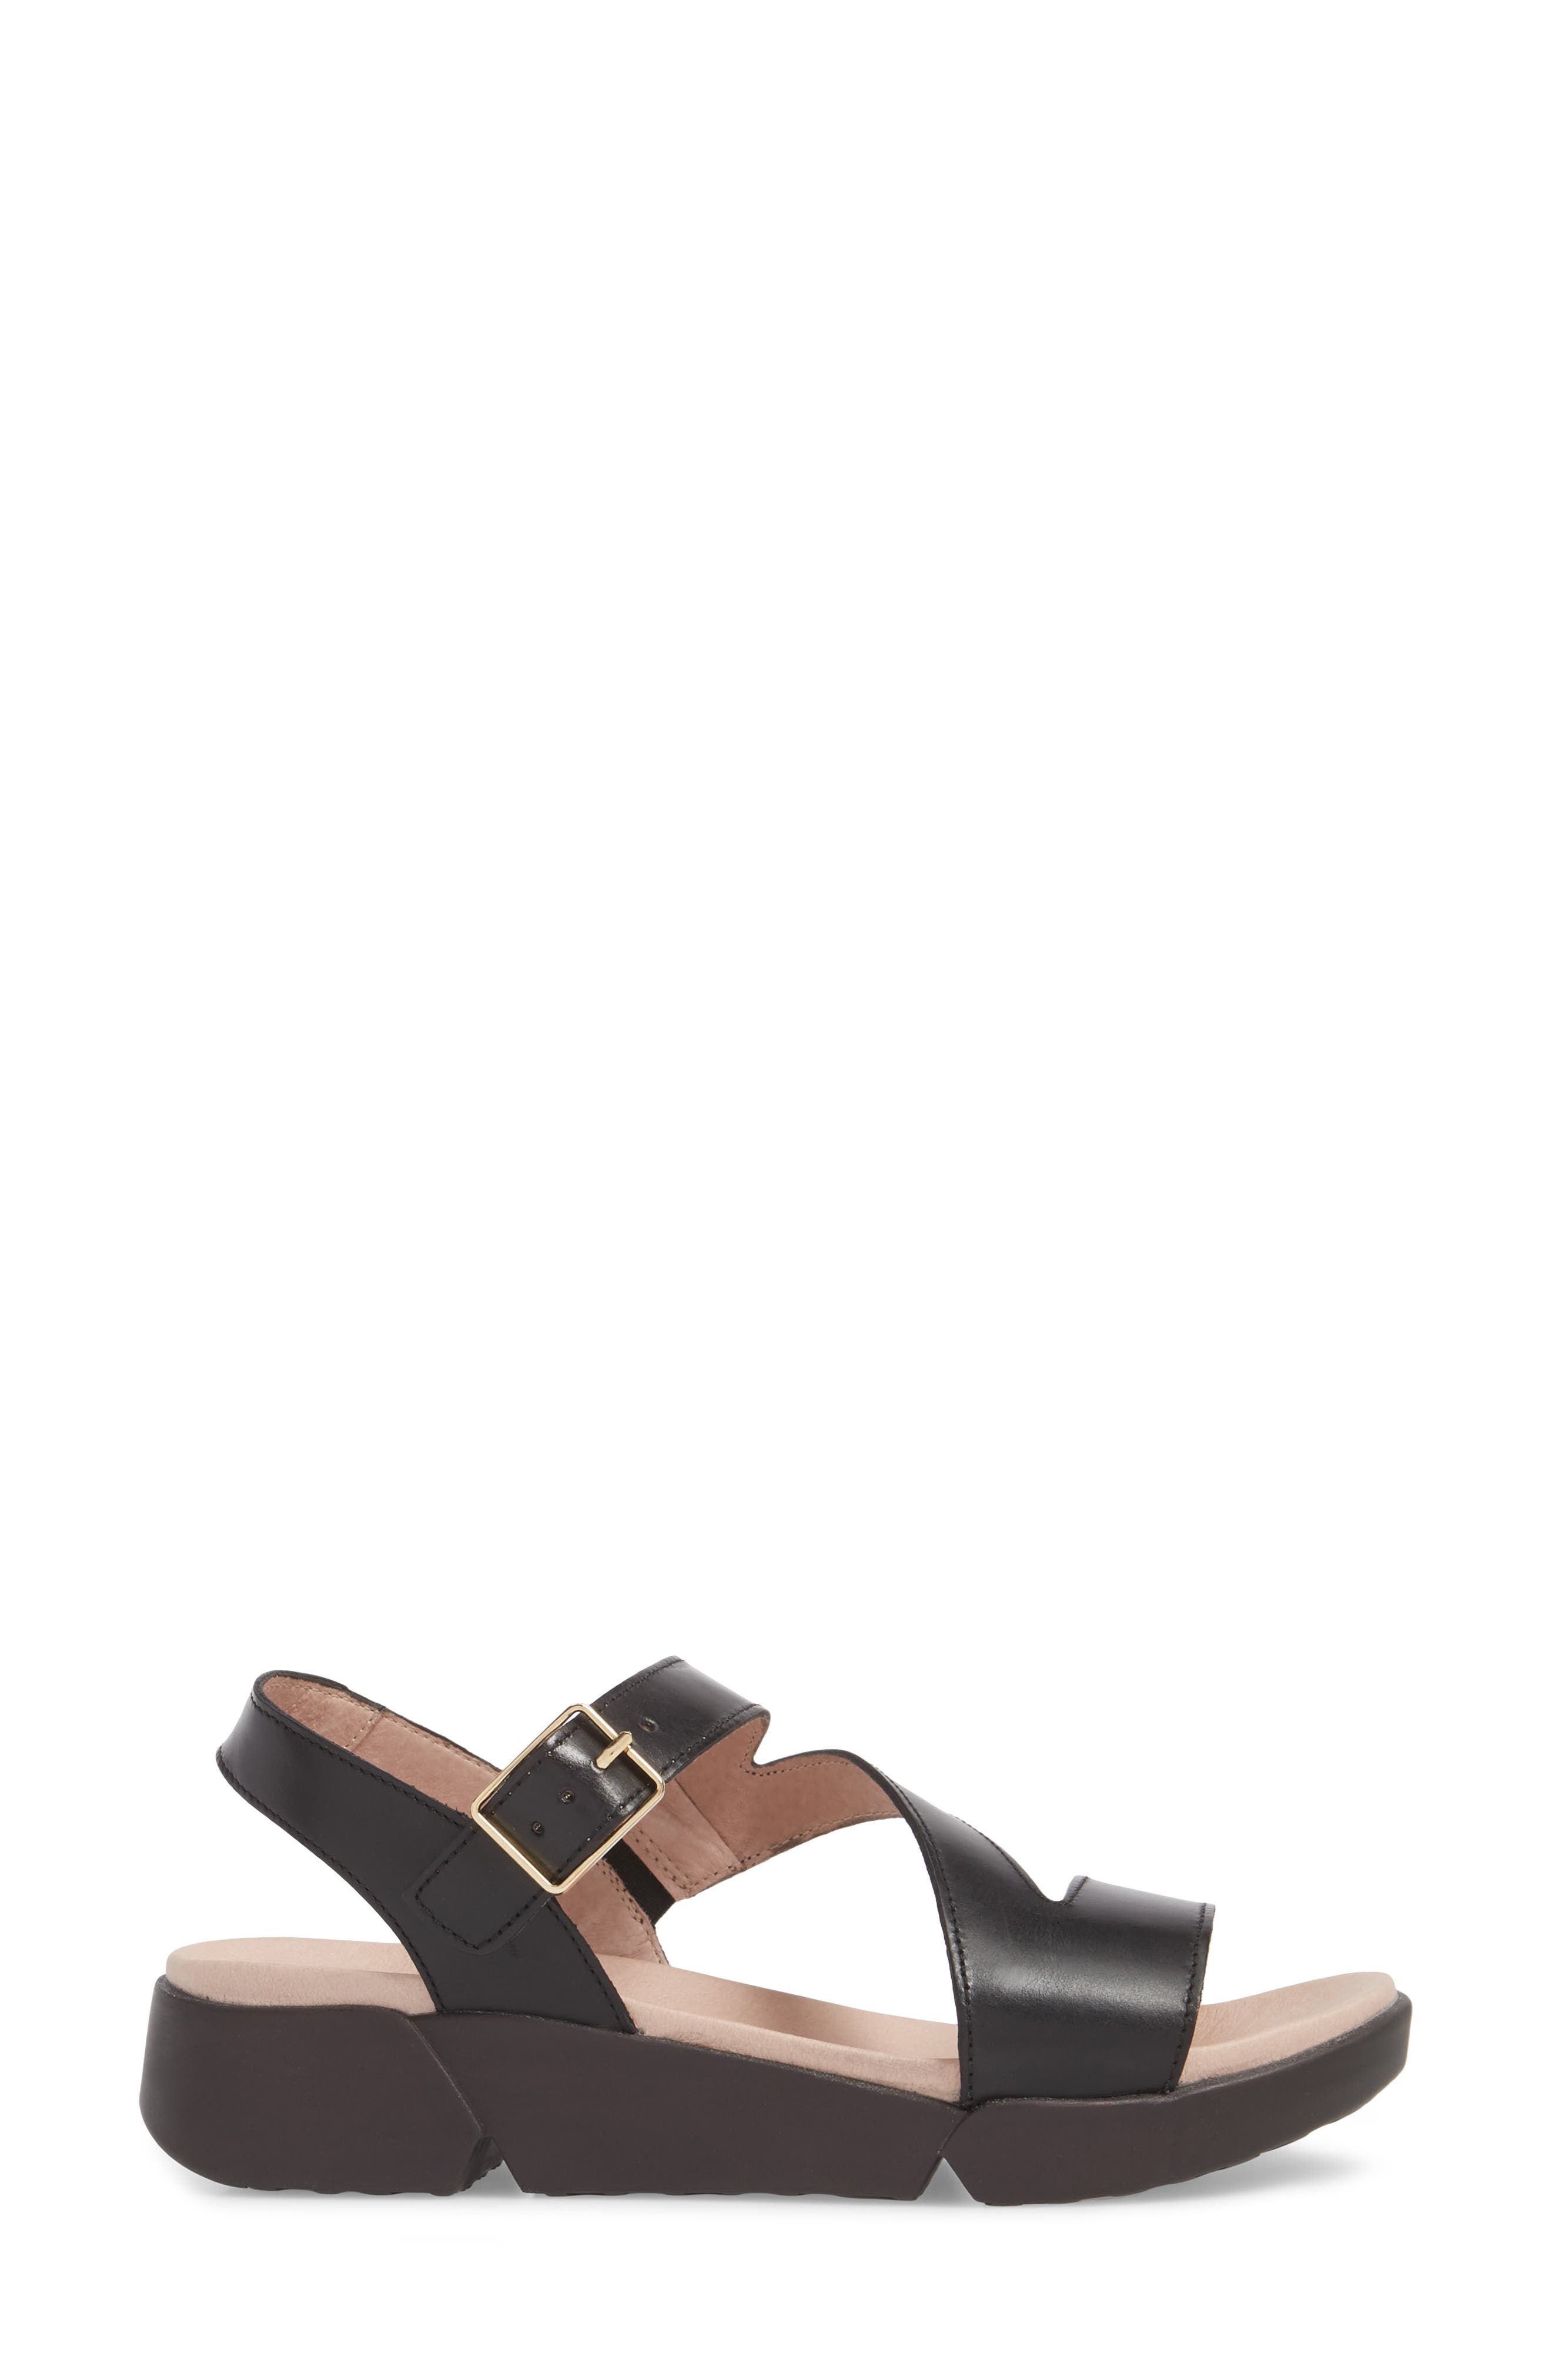 Platform Wedge Sandal,                             Alternate thumbnail 3, color,                             BLACK LEATHER